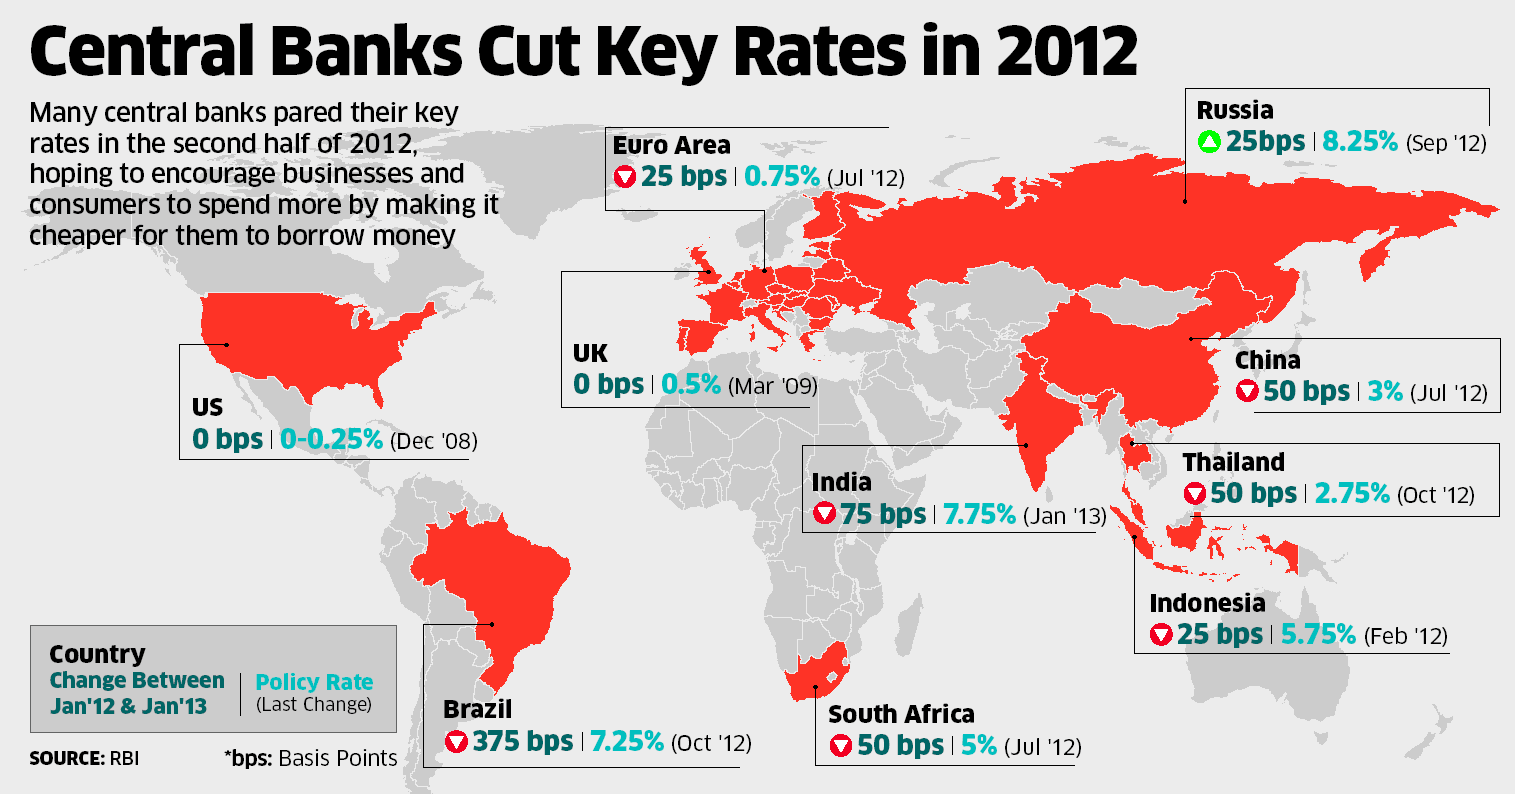 rbi key rates Introduction the reserve bank of india (rbi) has rich traditions of publishing data on various aspects of the indian economy through several of its publications.